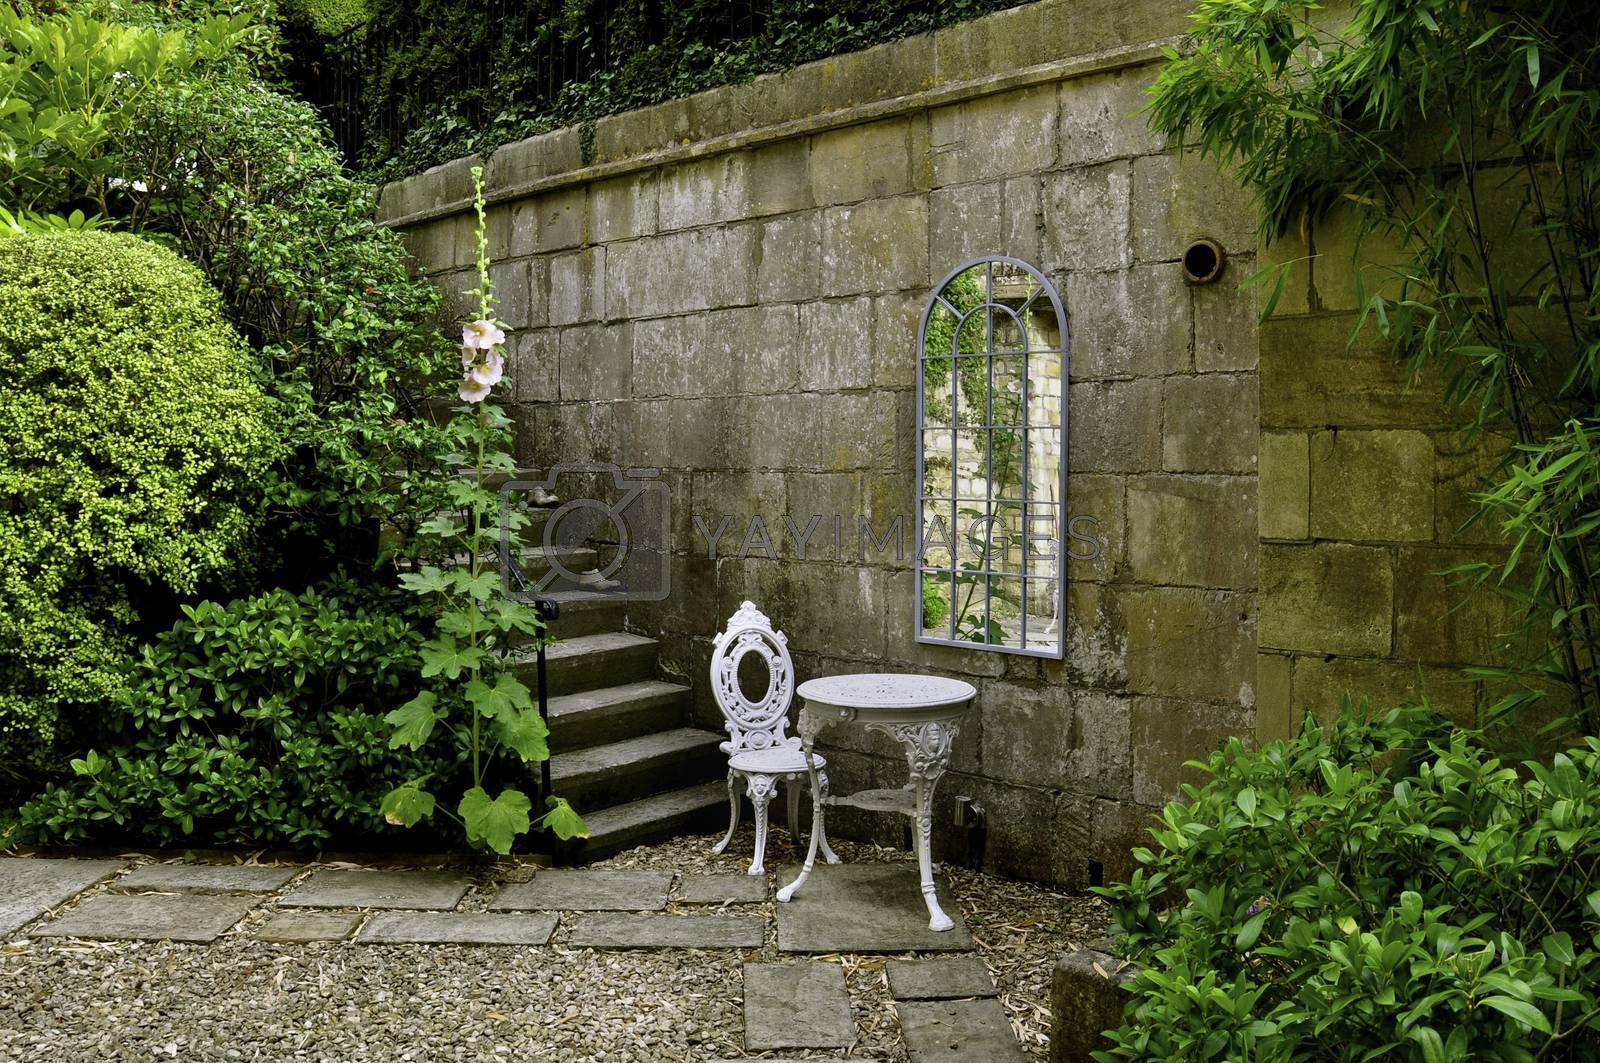 A courtyard country garden with stone walls, steps and flagged paths. With white wrought iron patio furniture, a Georgian style mirror and lush trees, shrubs and hollyhocks.